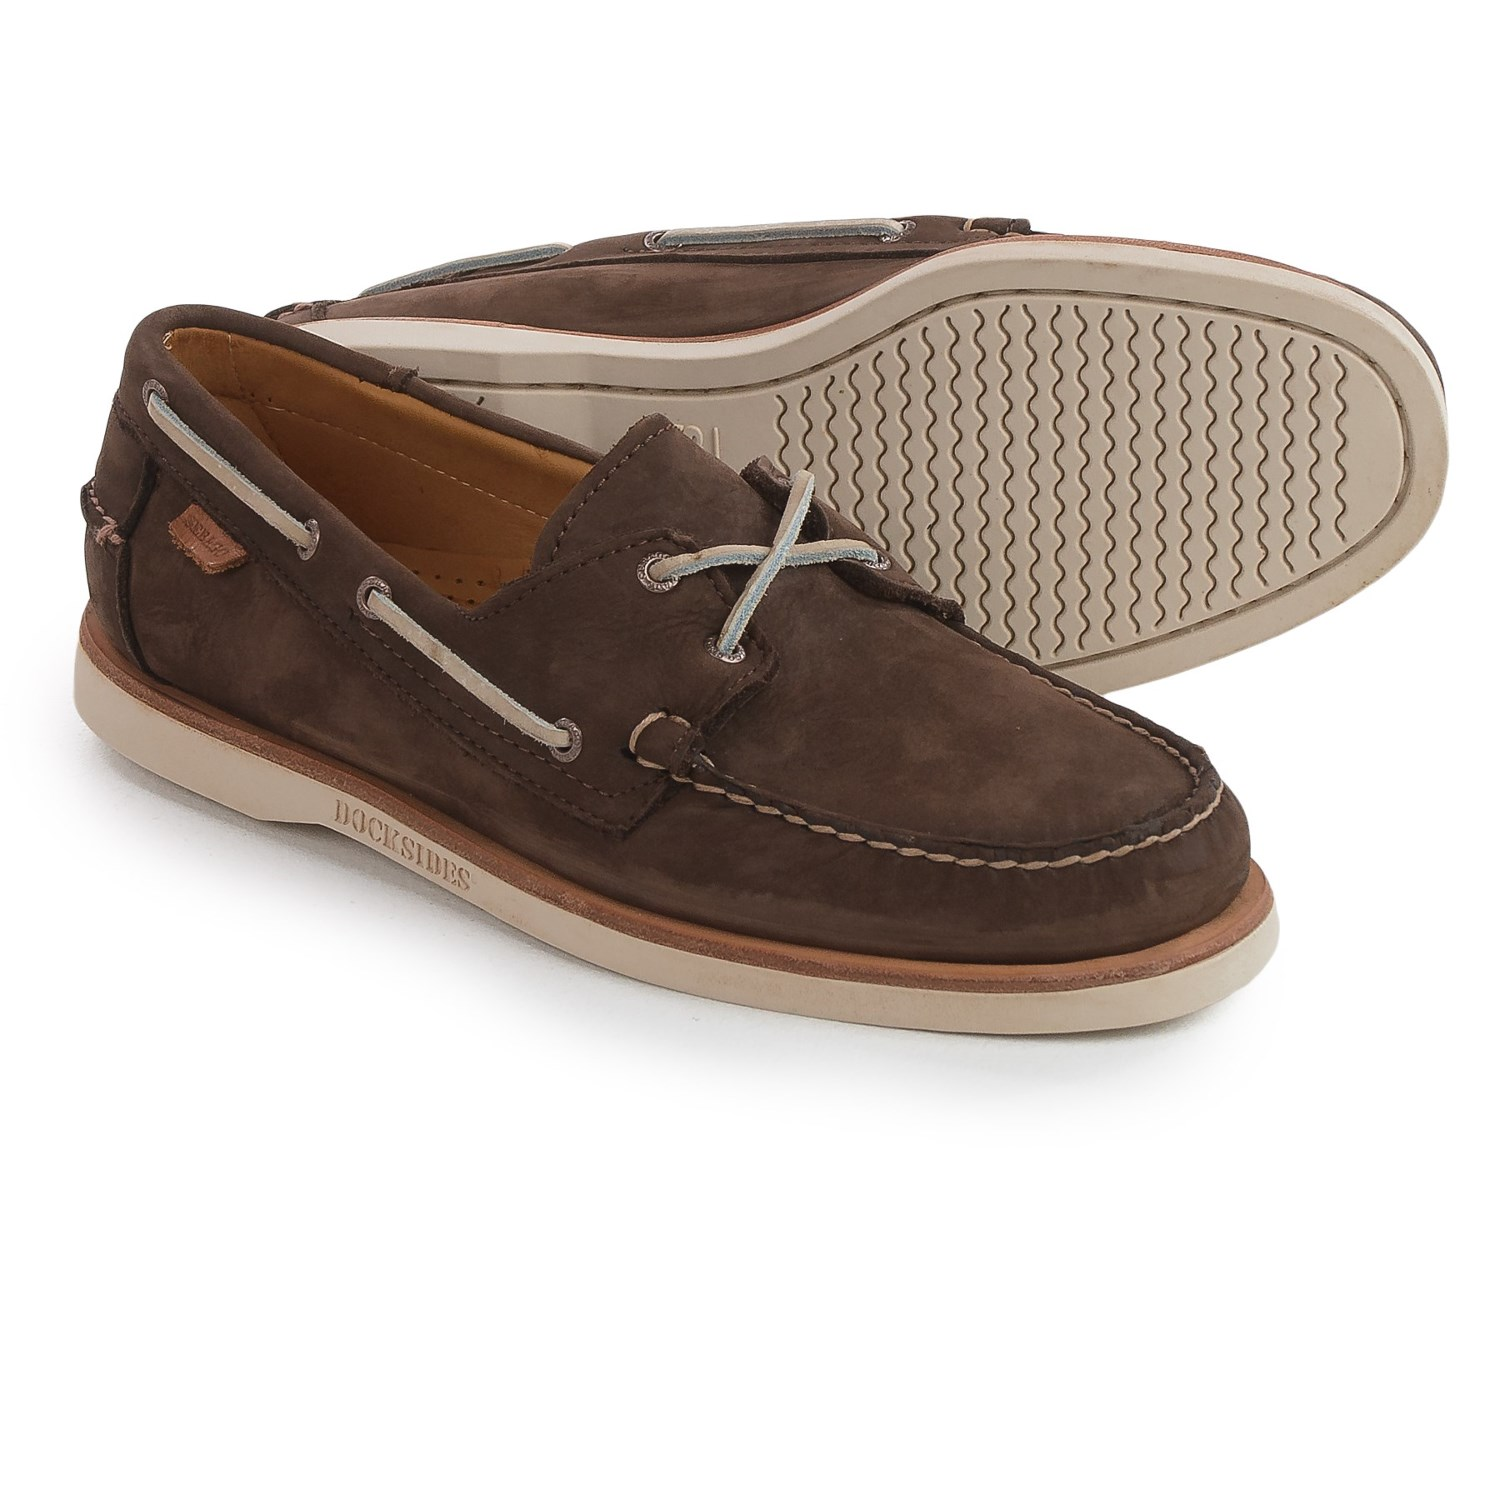 Sebago DOCKSIDES - Boat shoes - dark brown 3xWTQan